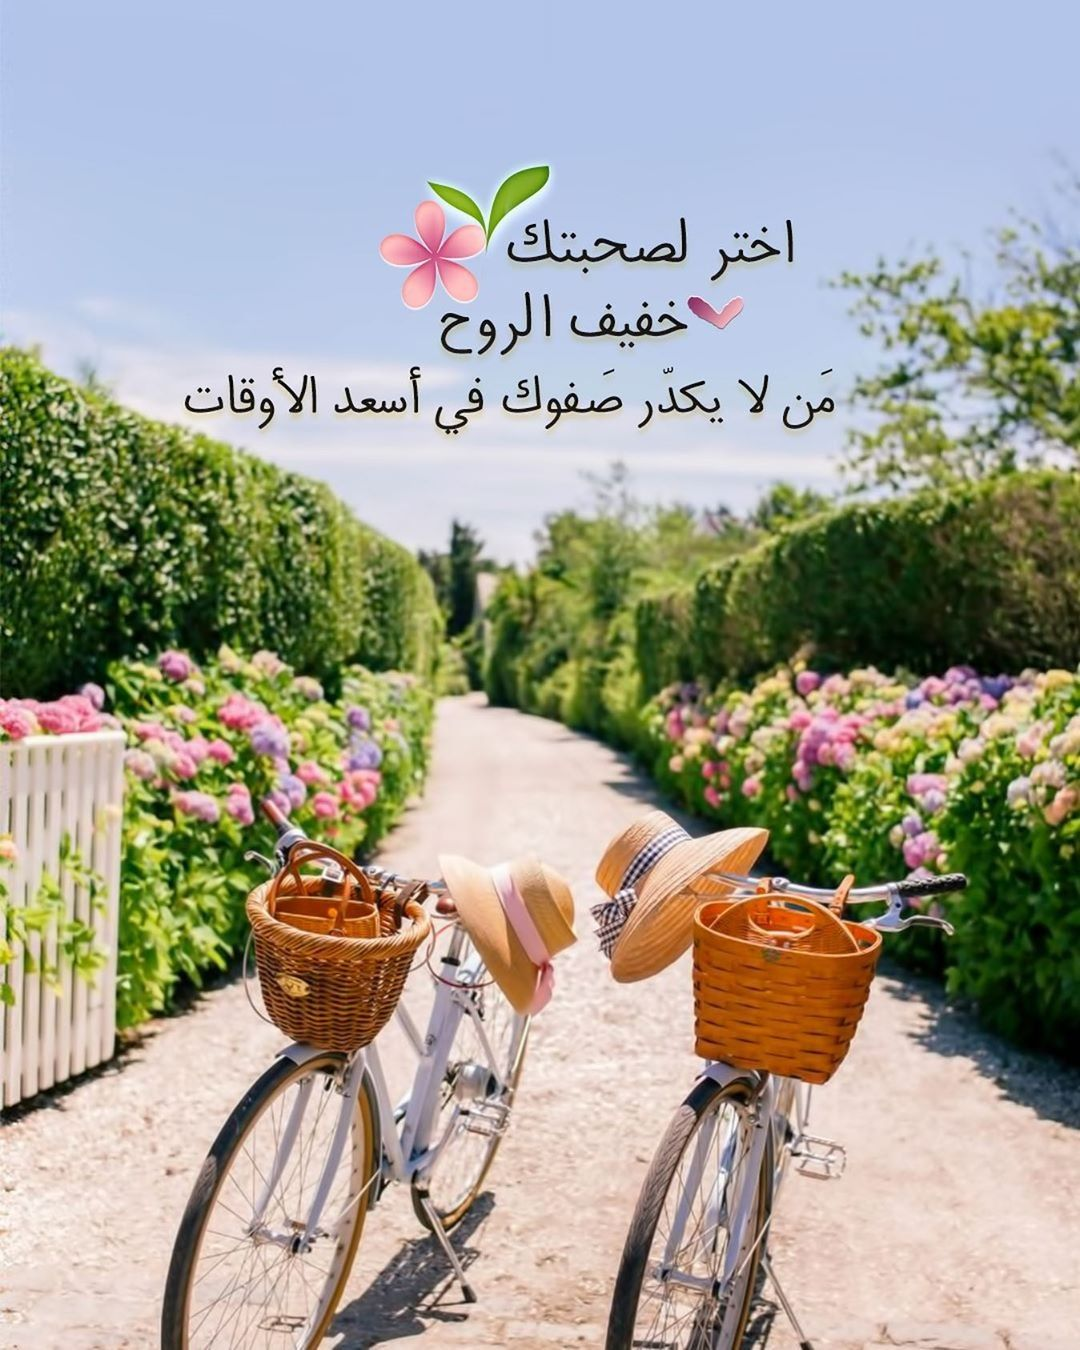 Pin By صورة و كلمة On كلمات راقت لي Quotes Beautiful Arabic Words Mixed Feelings Quotes Good Morning Images